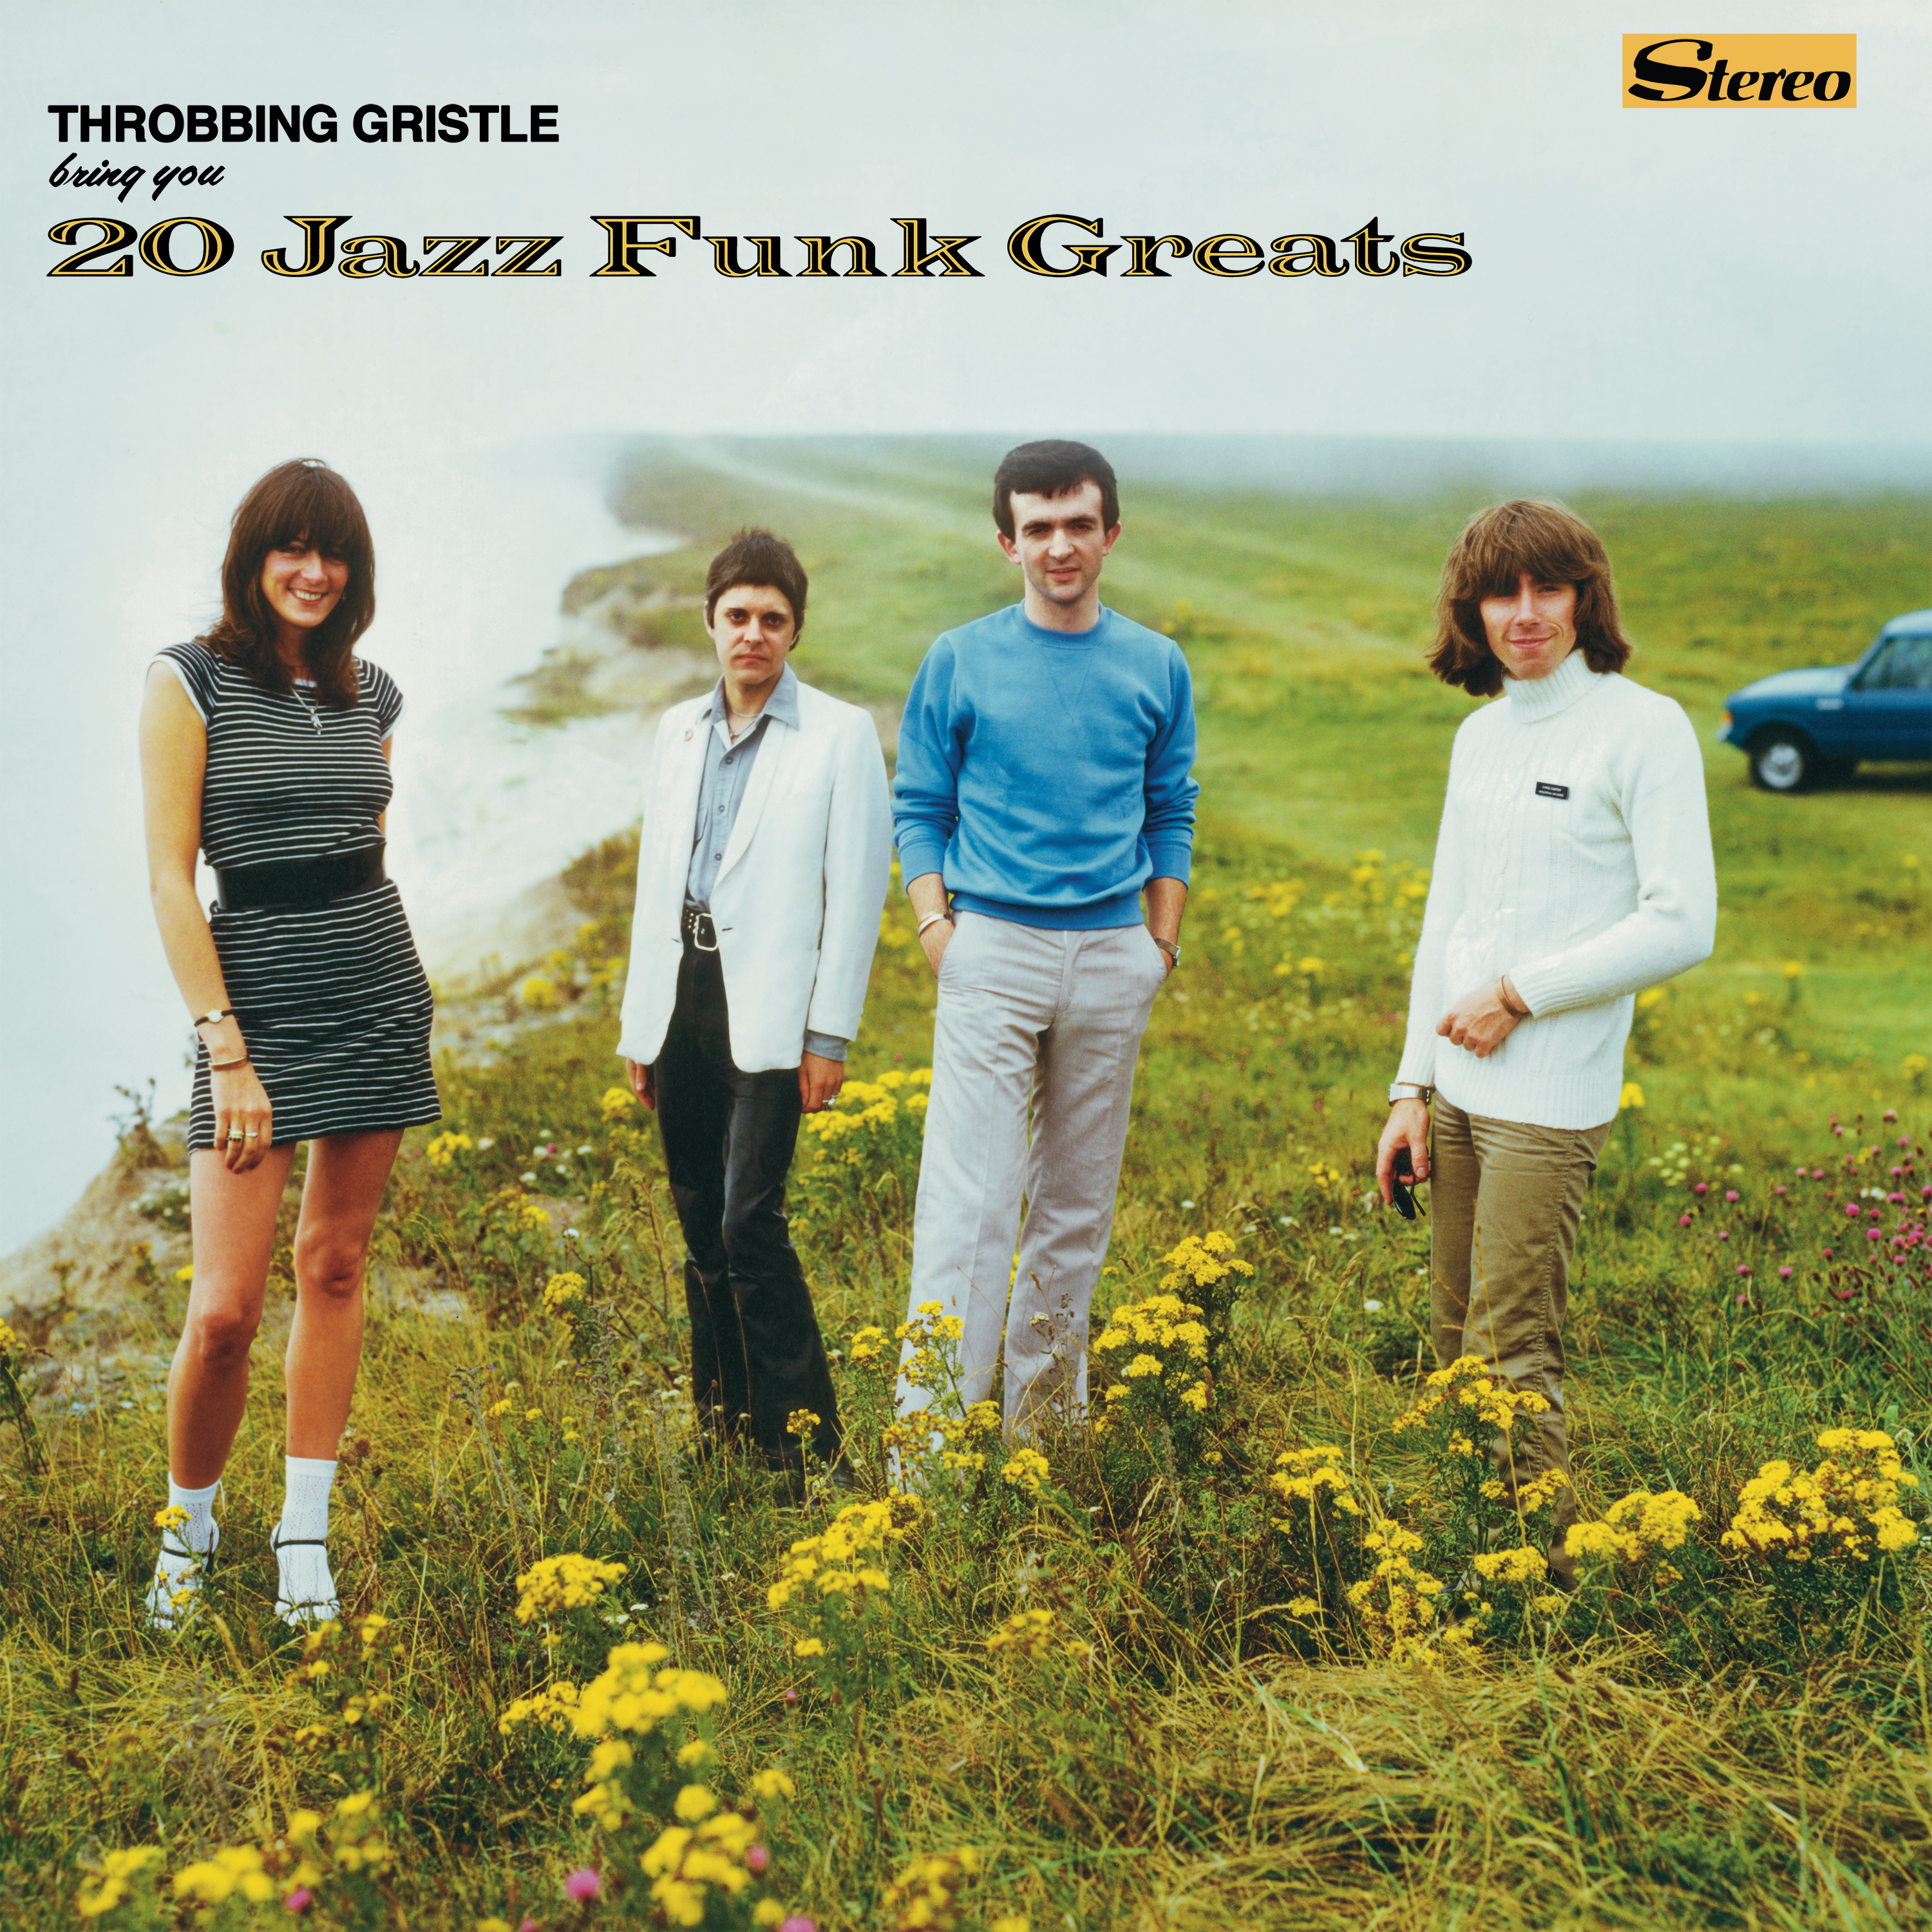 Throbbing Gristle - 20 Jazz Funk Greats - Throbbing Gristle